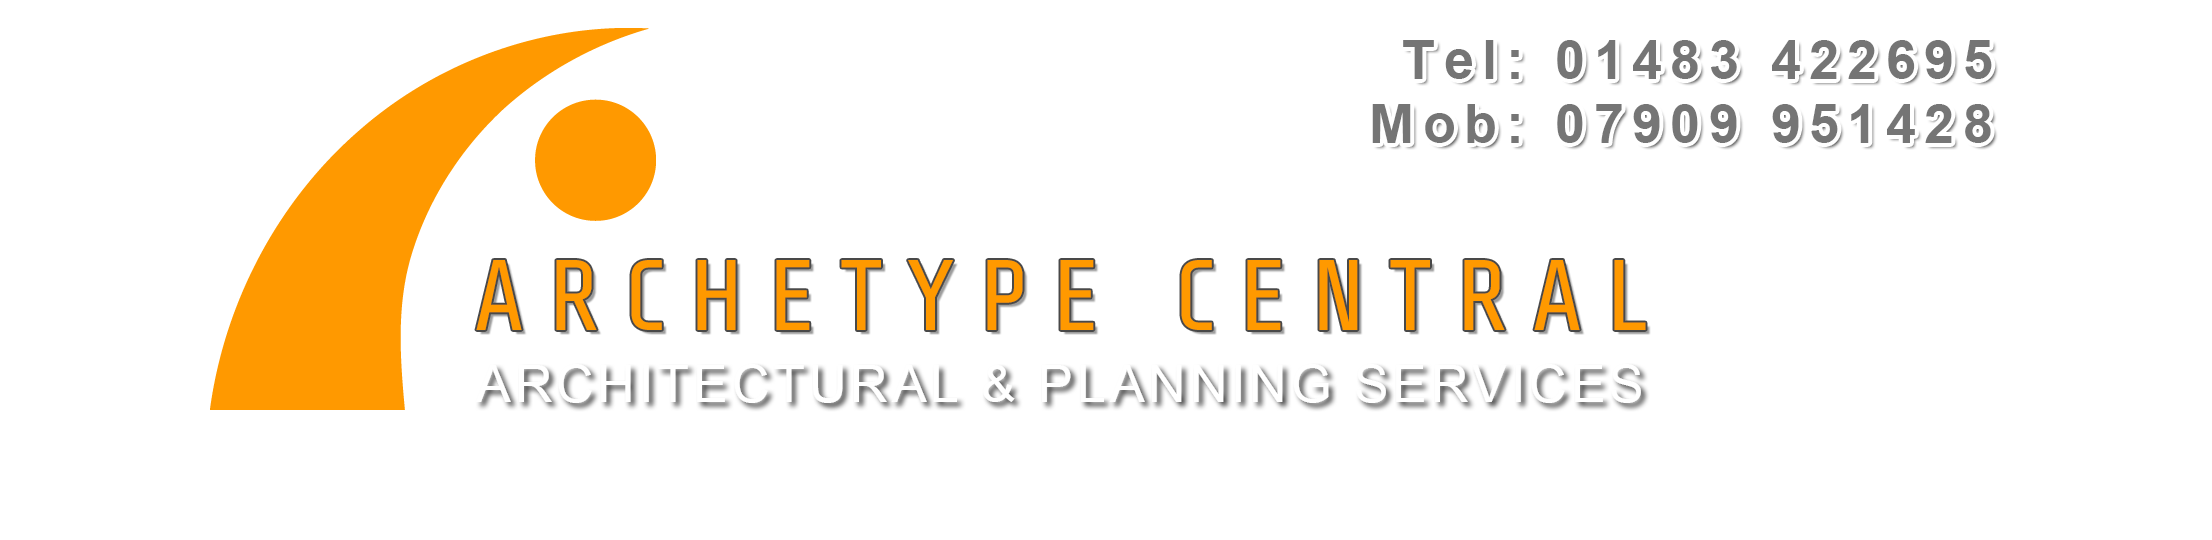 Archetype Central Retina Logo